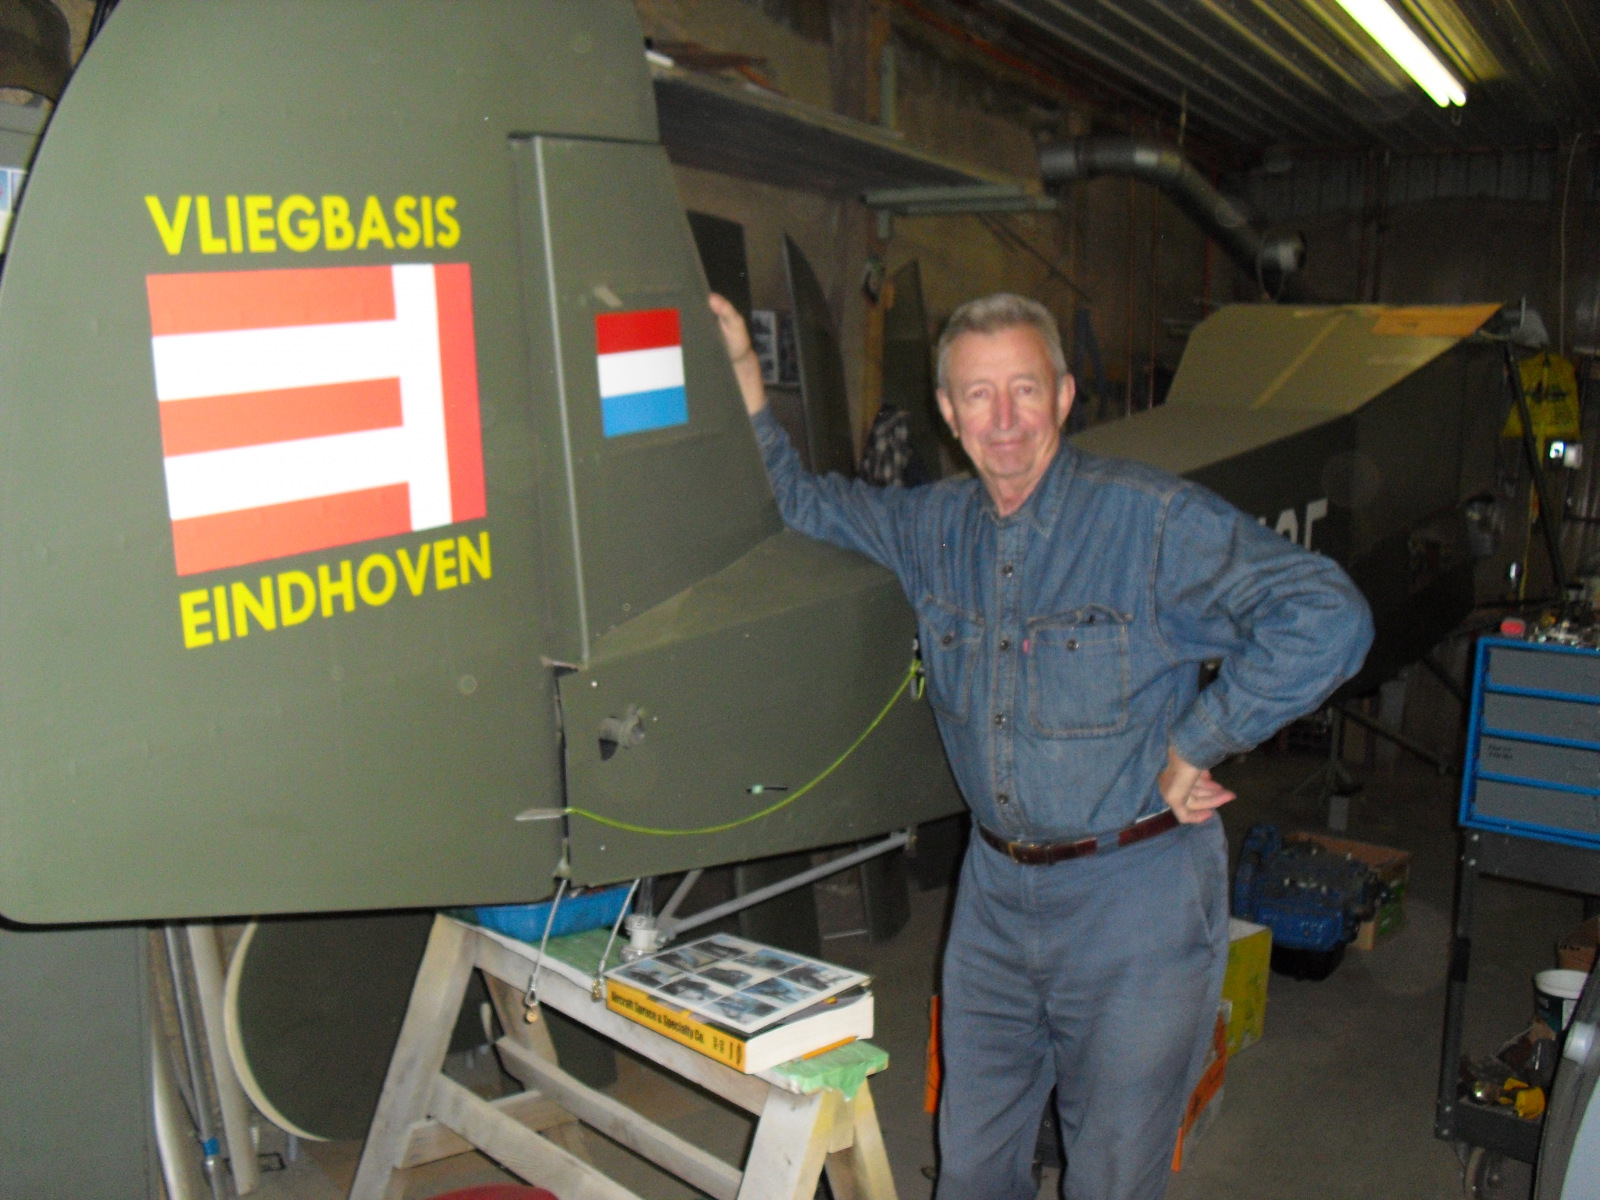 Mike-Frijters-and-his-storch-airplane-2